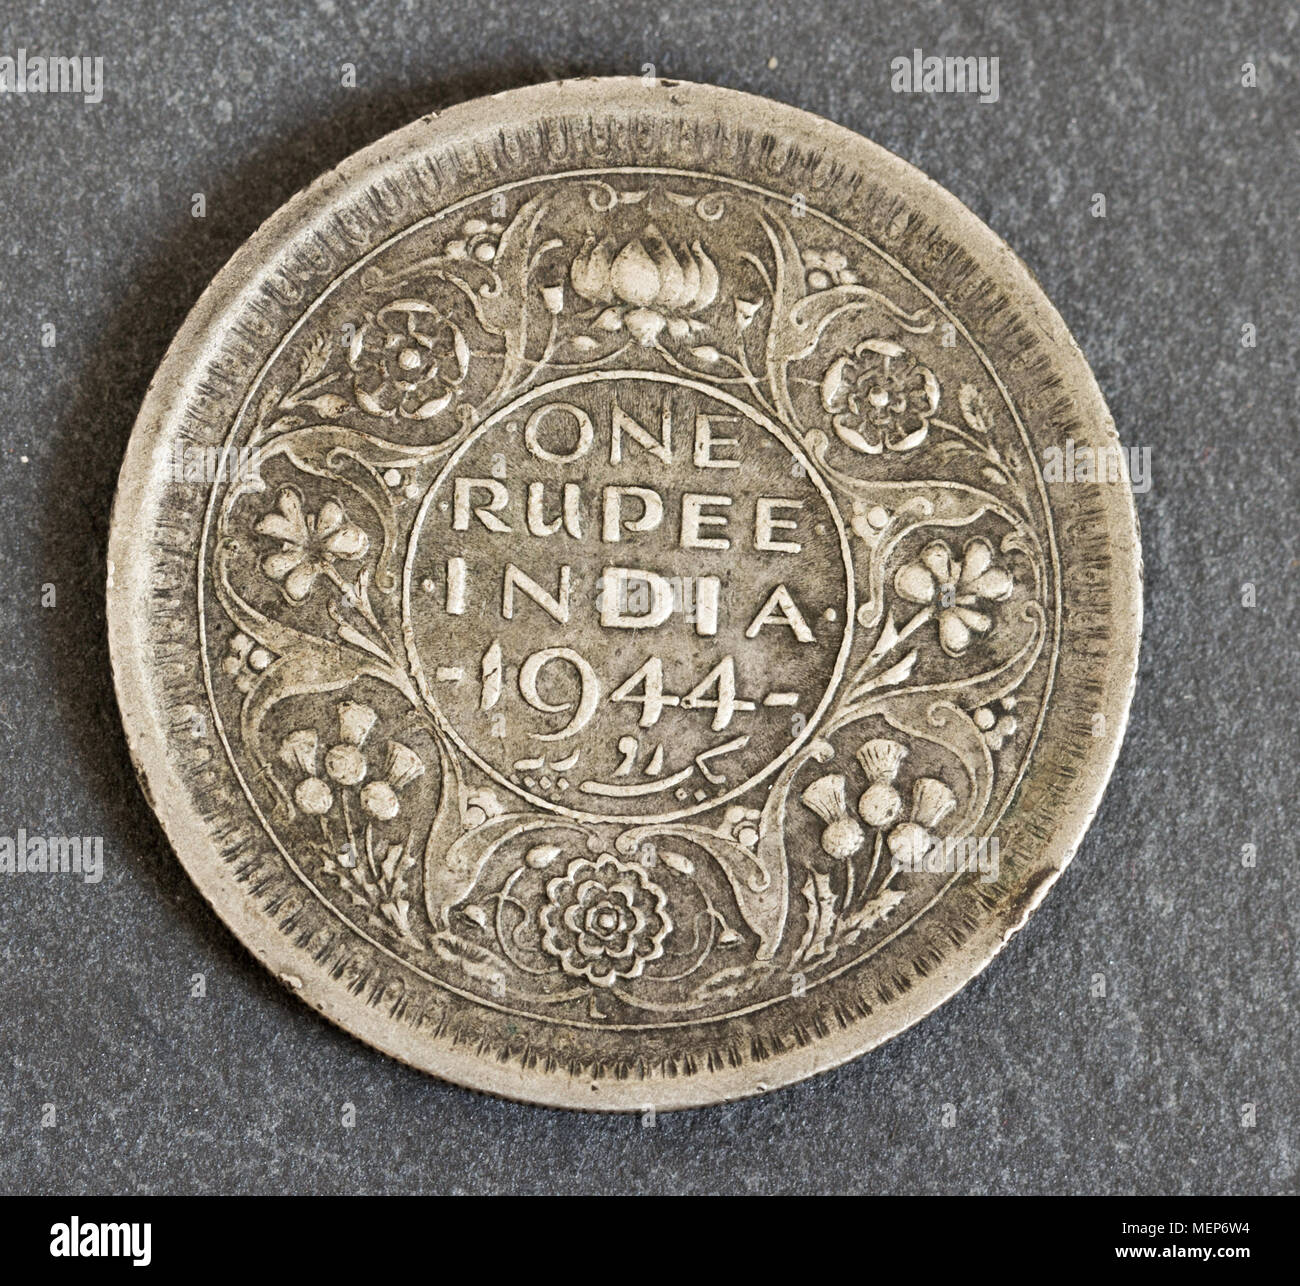 historical one rupee coin - Stock Image